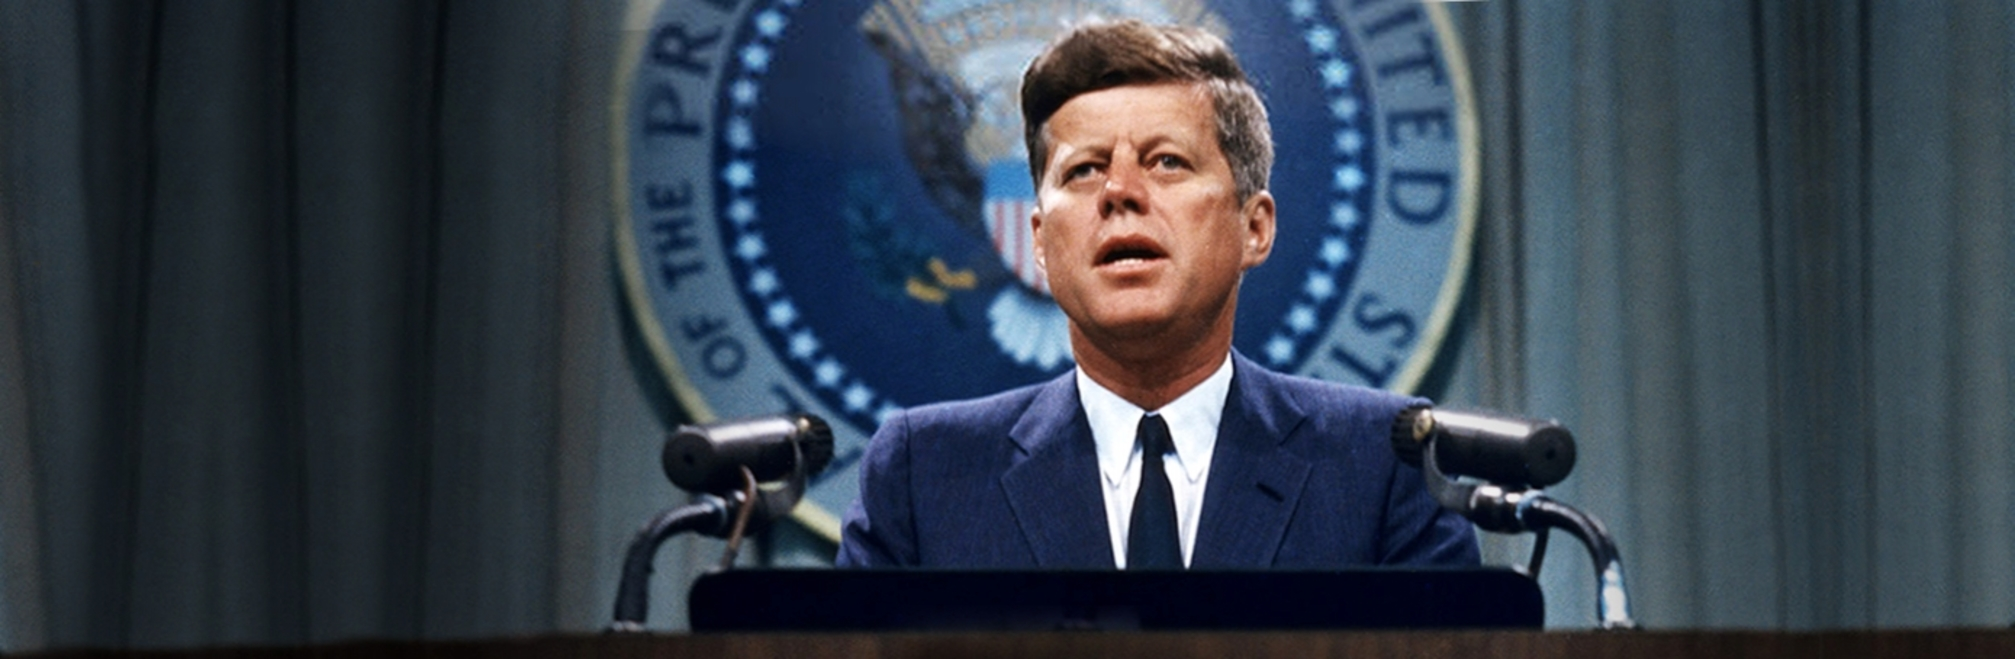 the life and political career of president john f kennedy About the early life and career of president of the united states john f kennedy.